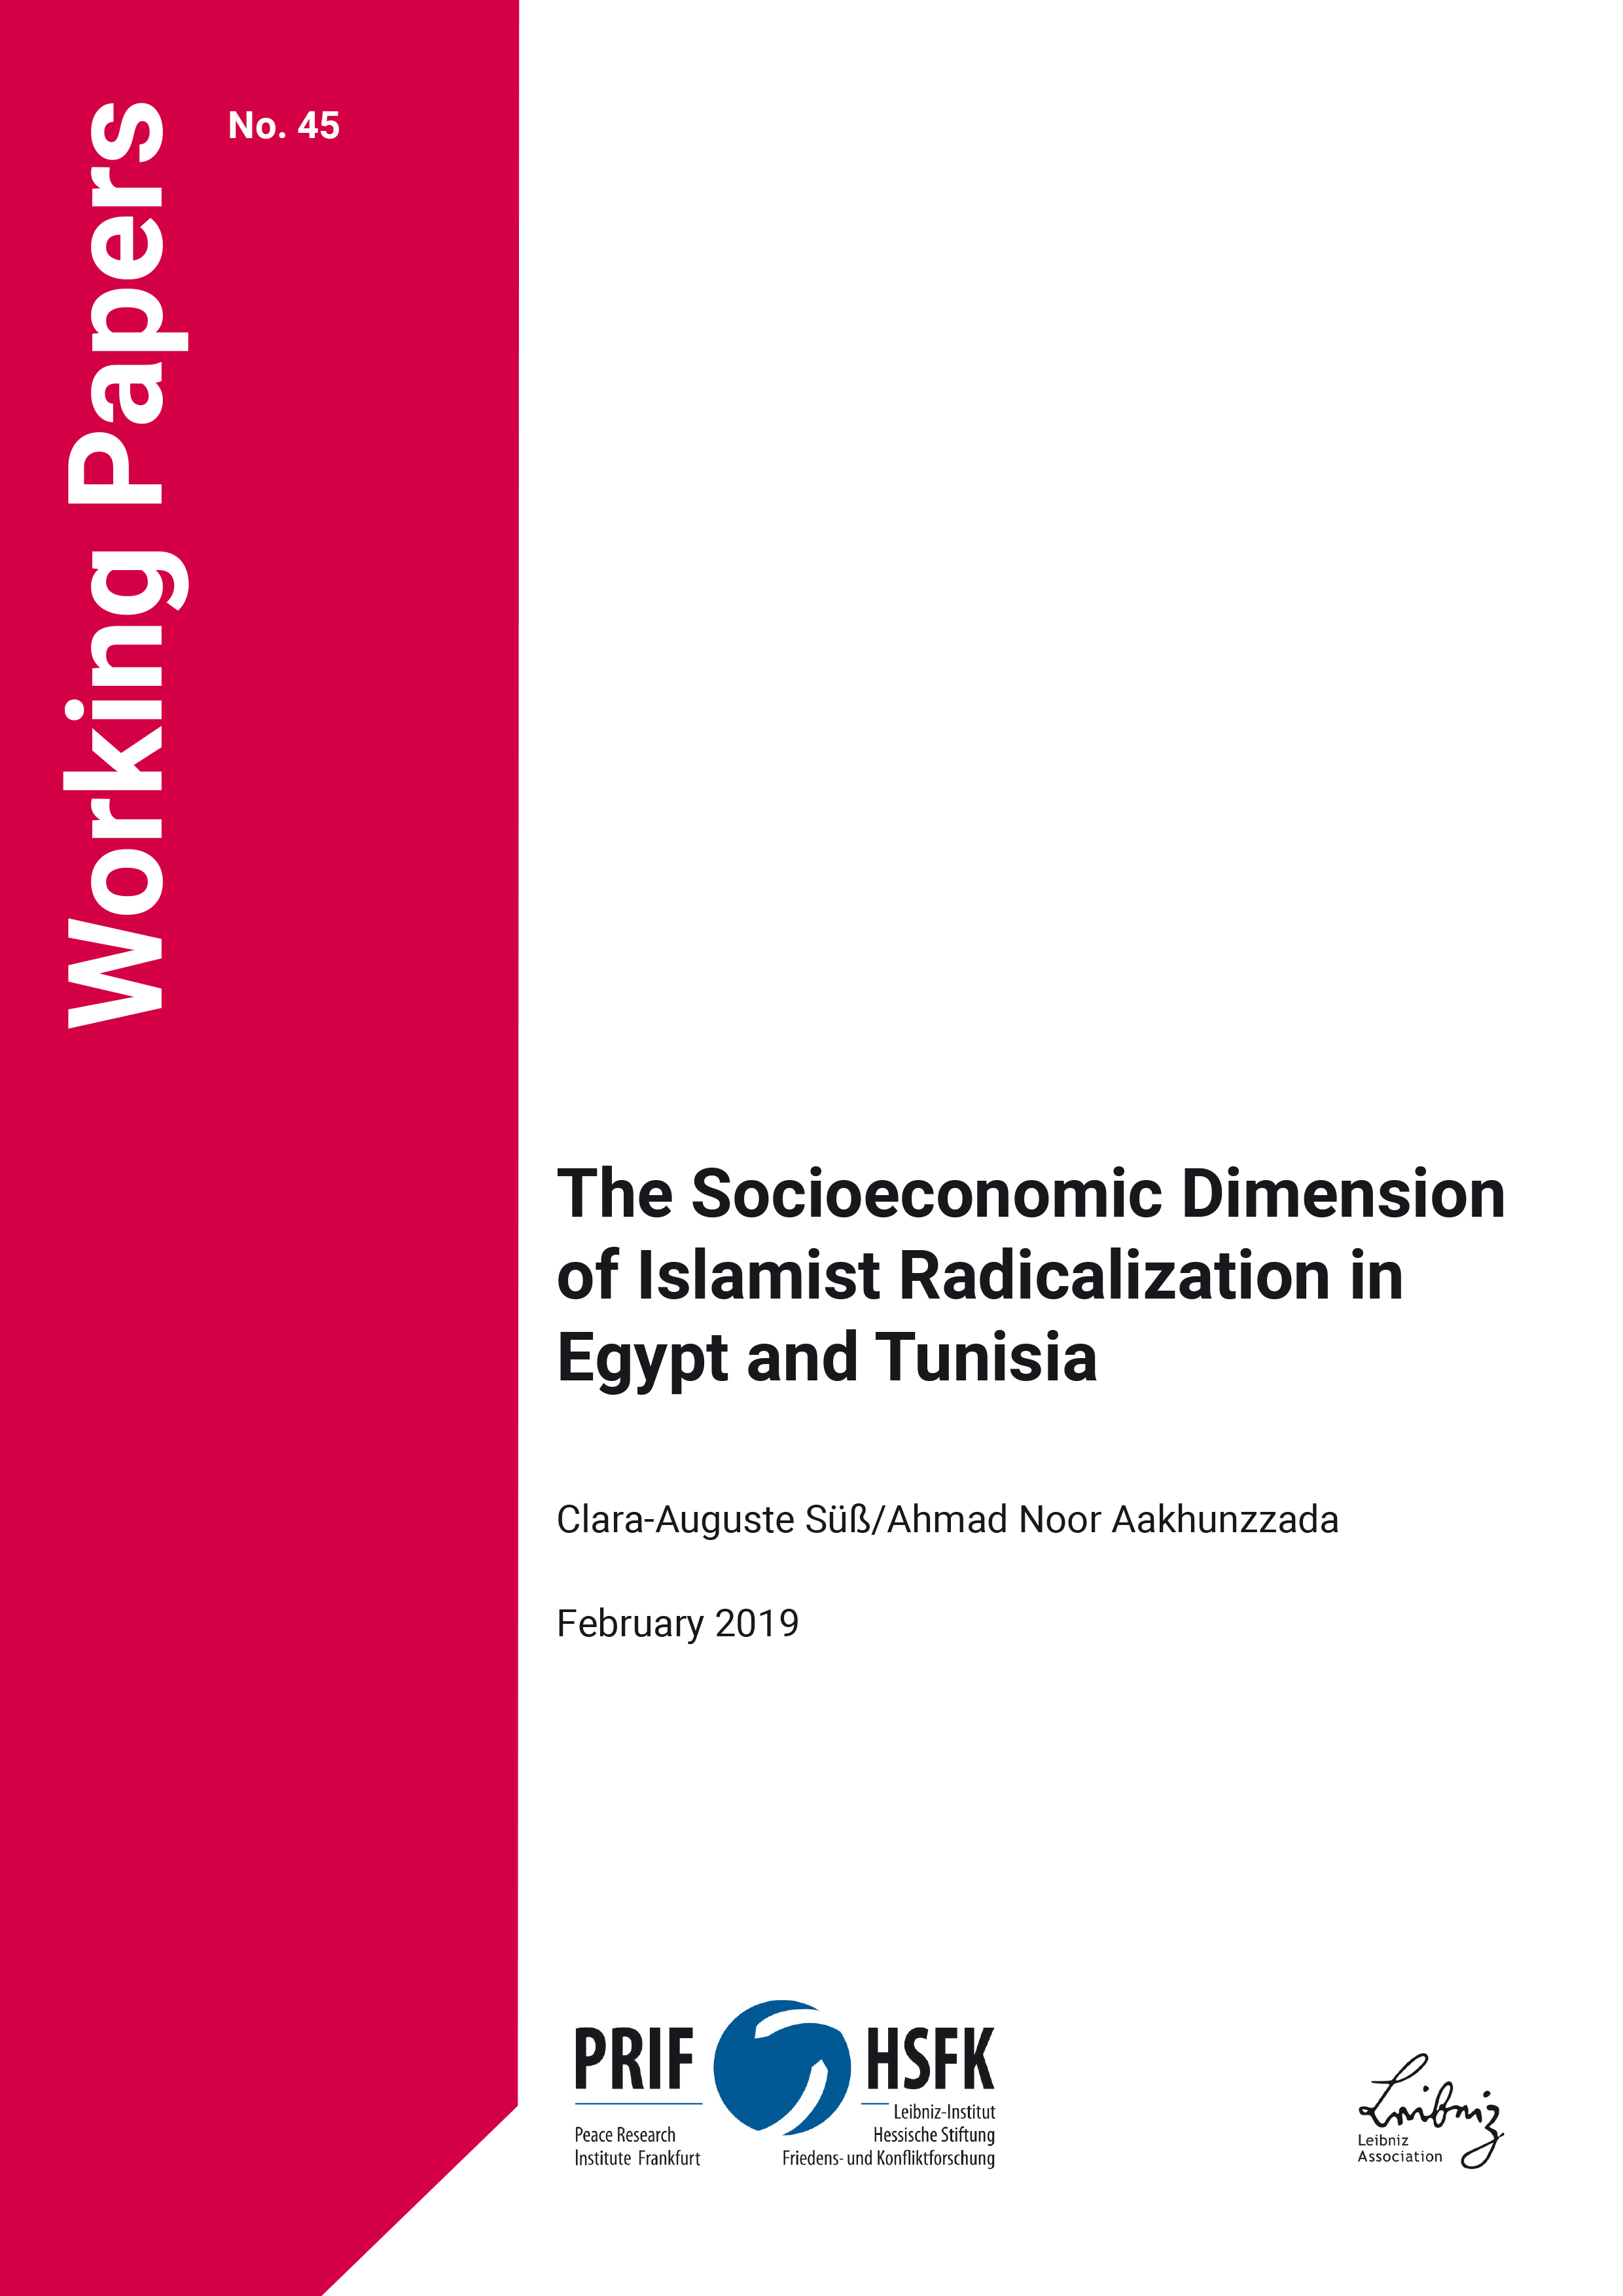 Download: The Socioeconomic Dimension of Islamist Radicalization in Egypt and Tunisia